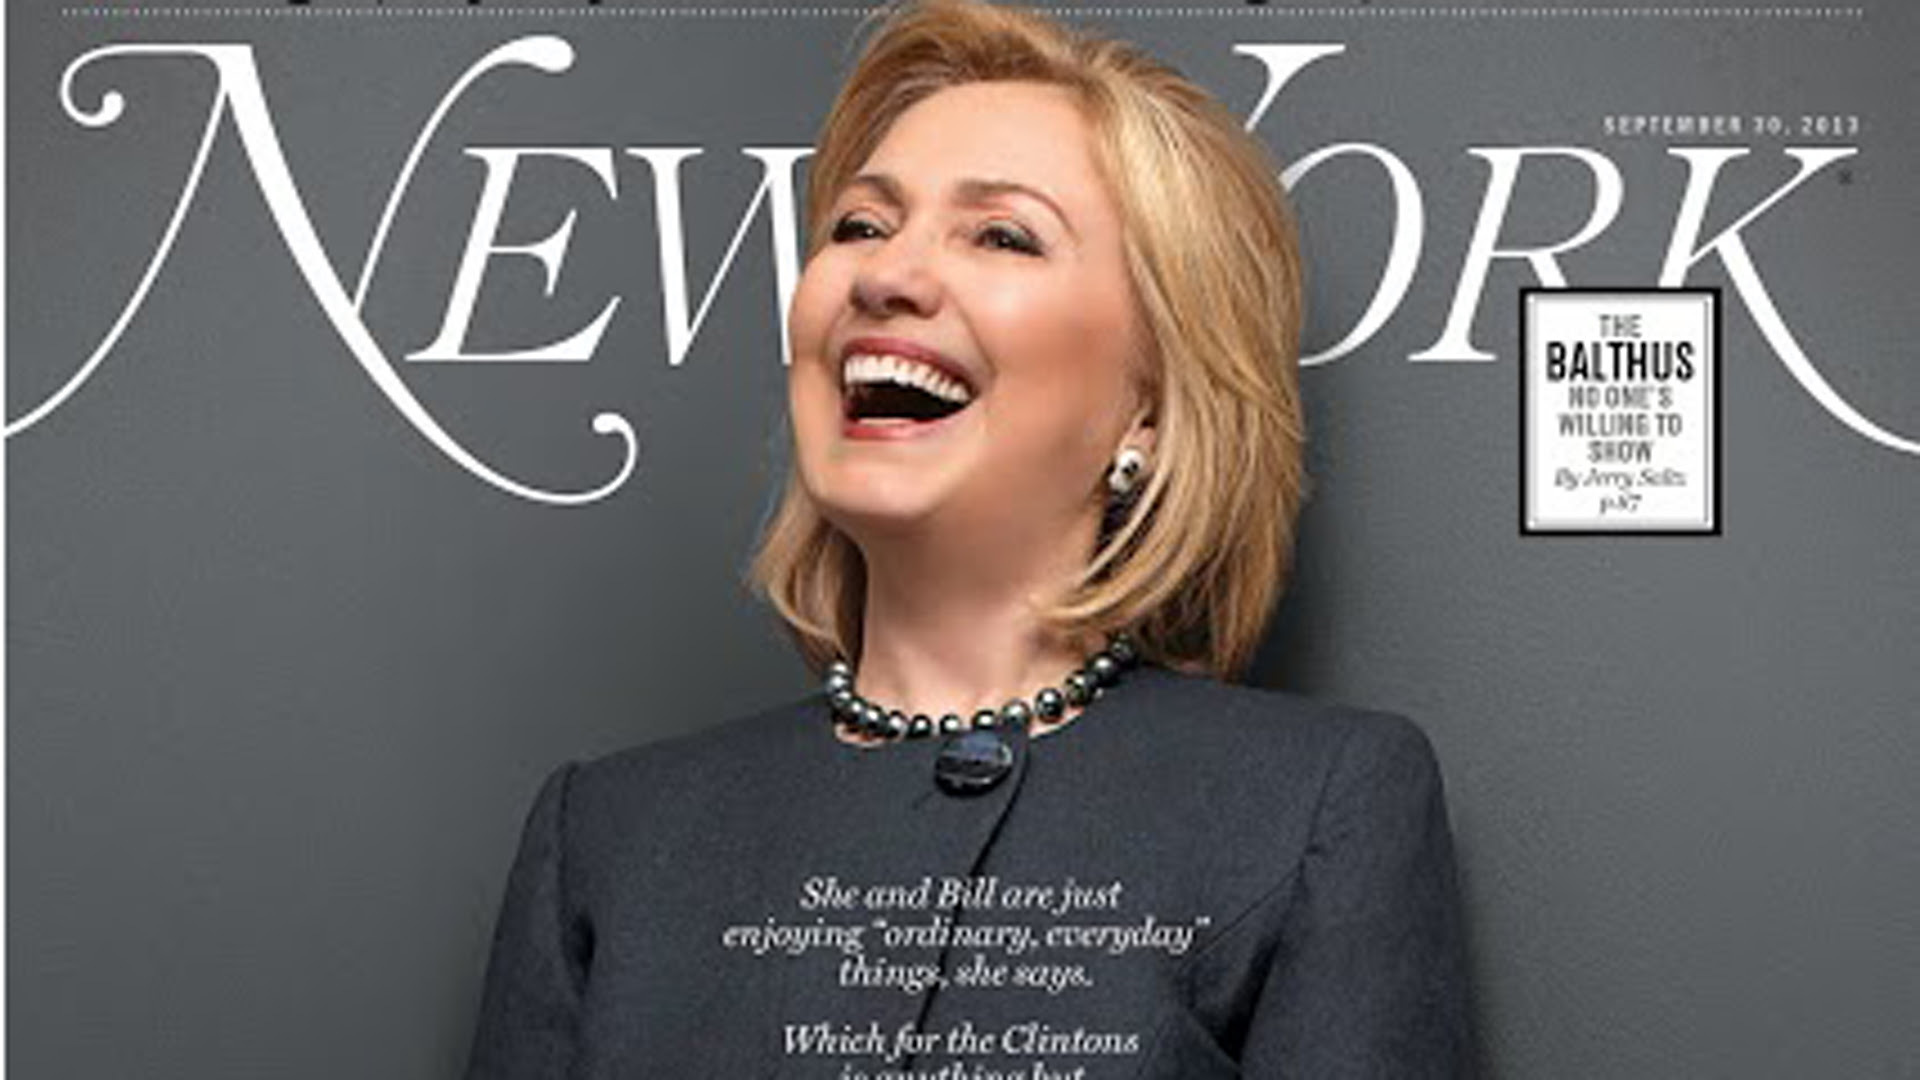 Hillary Clinton On The Cover Of New York